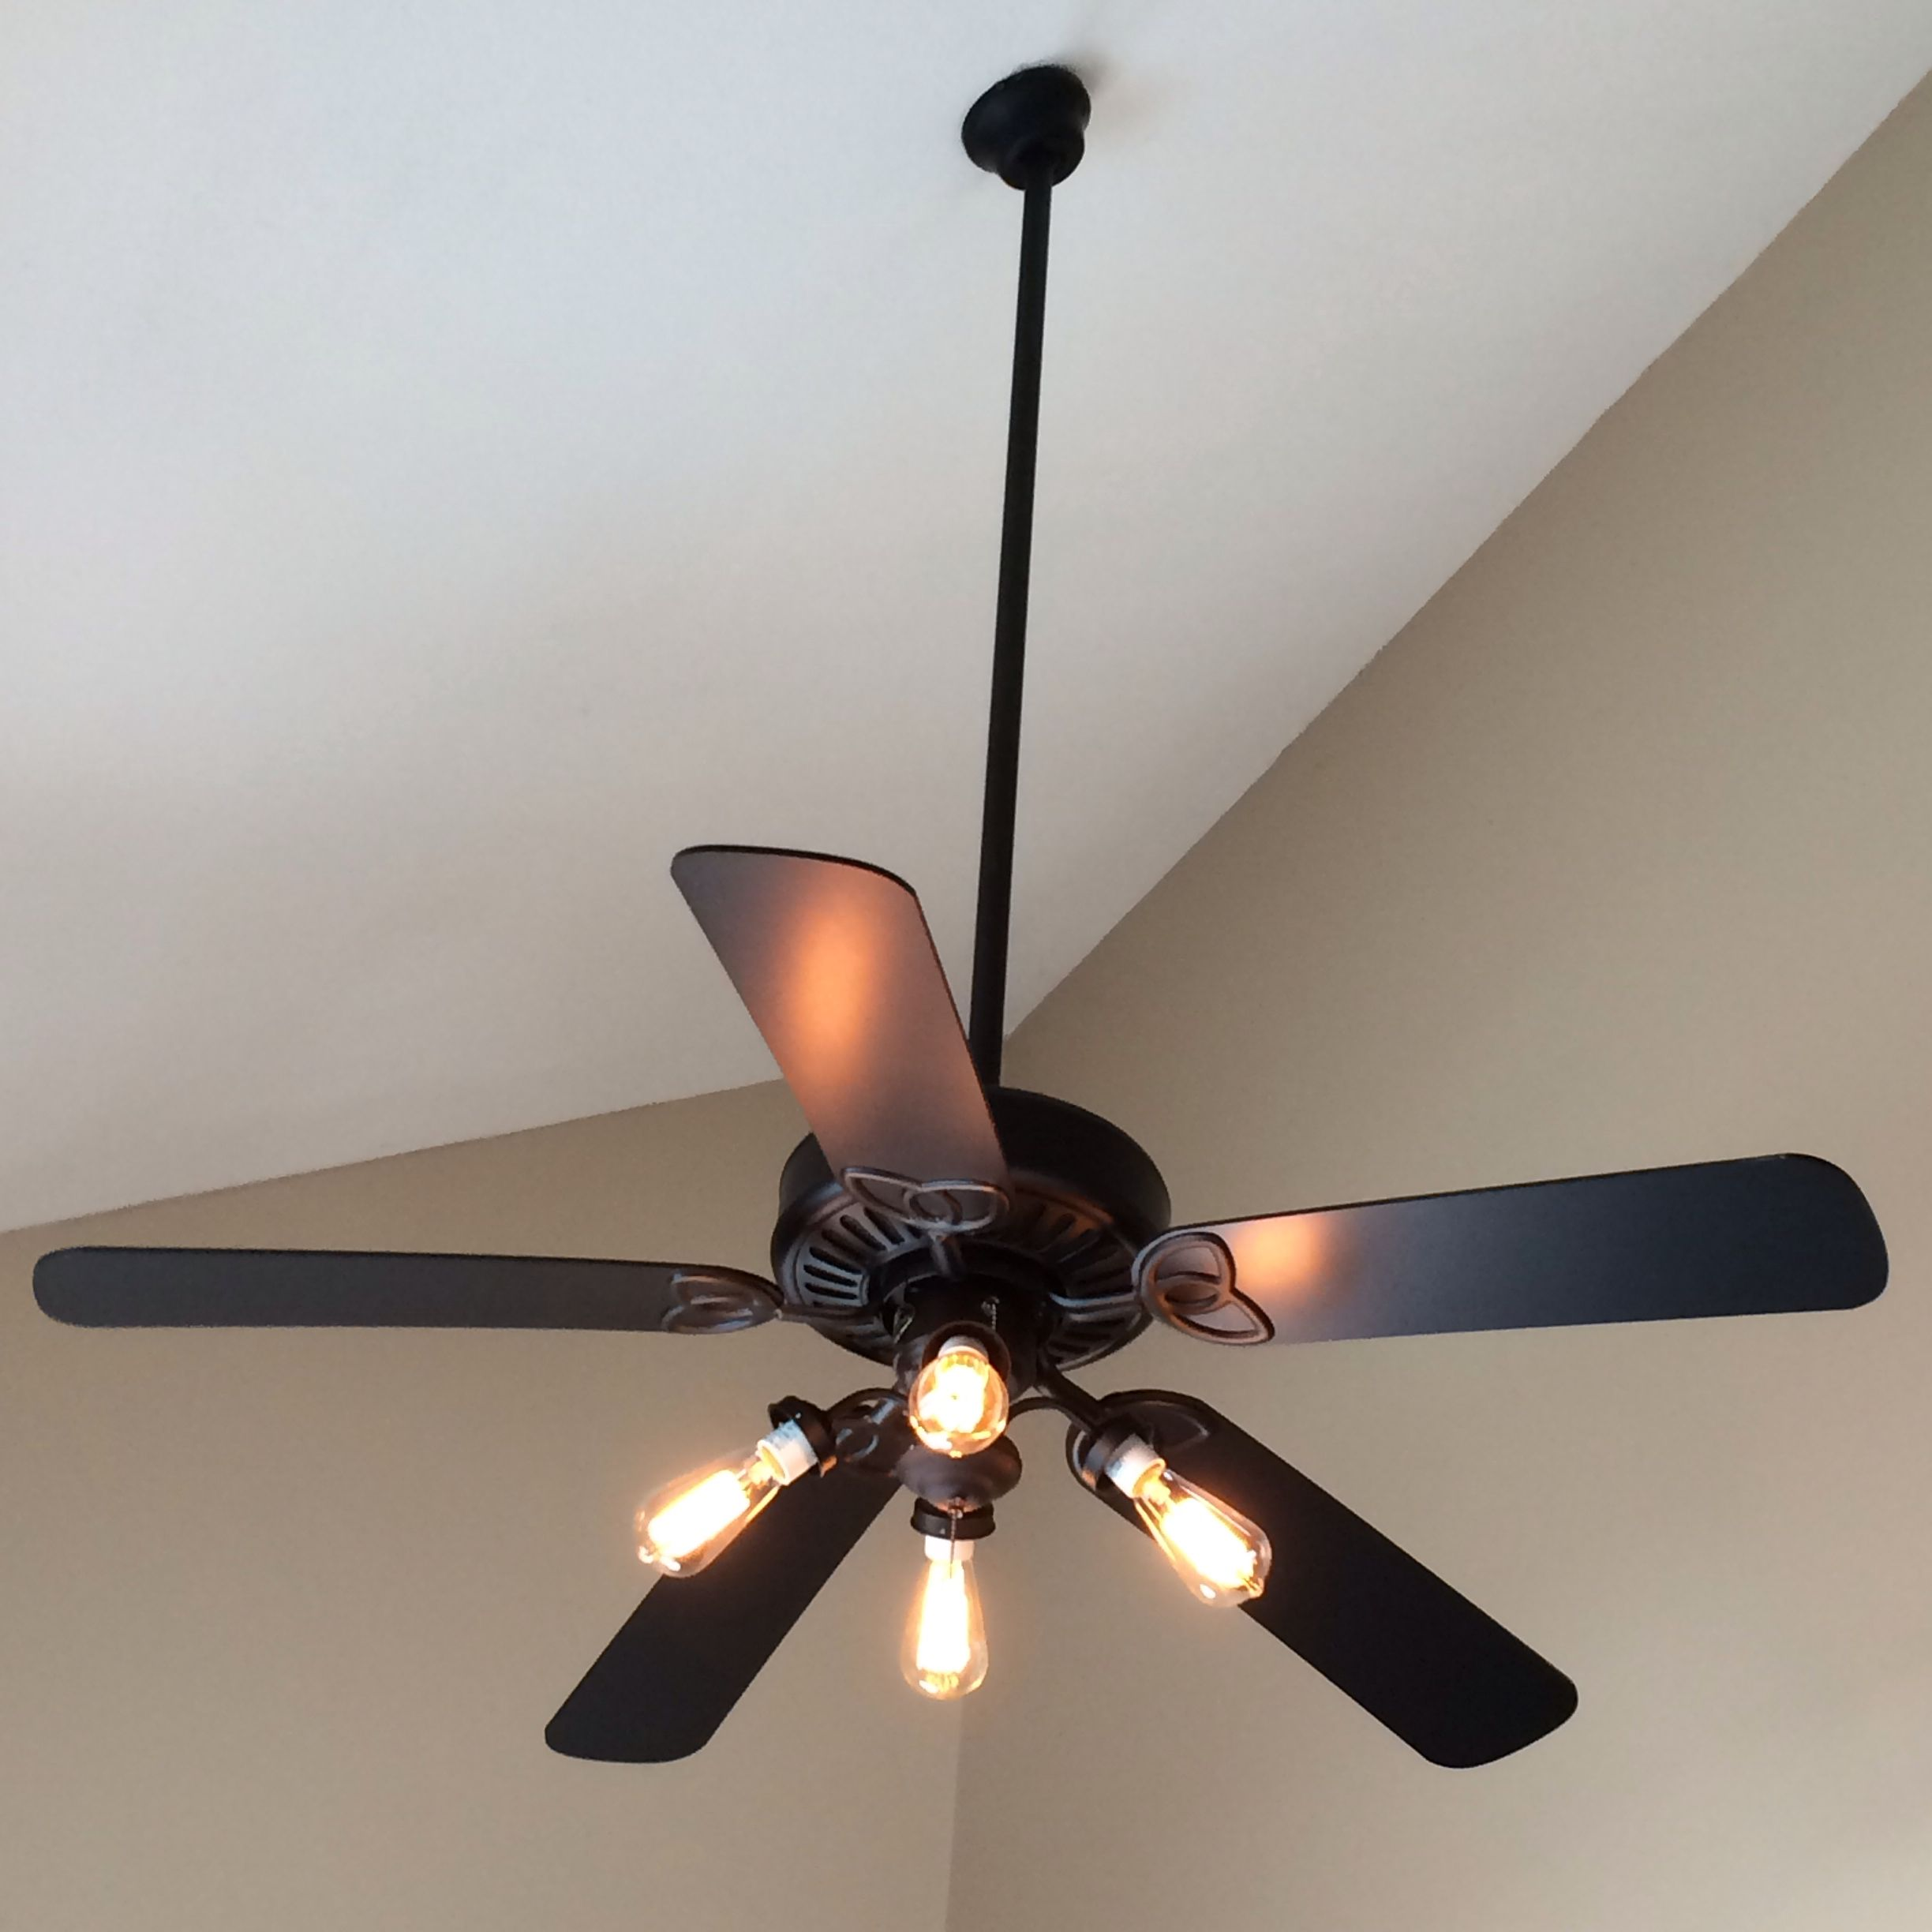 Industrial Style Ceiling Fans Quick Ceiling Fan Makeover Simply Remove The Shades And Screws